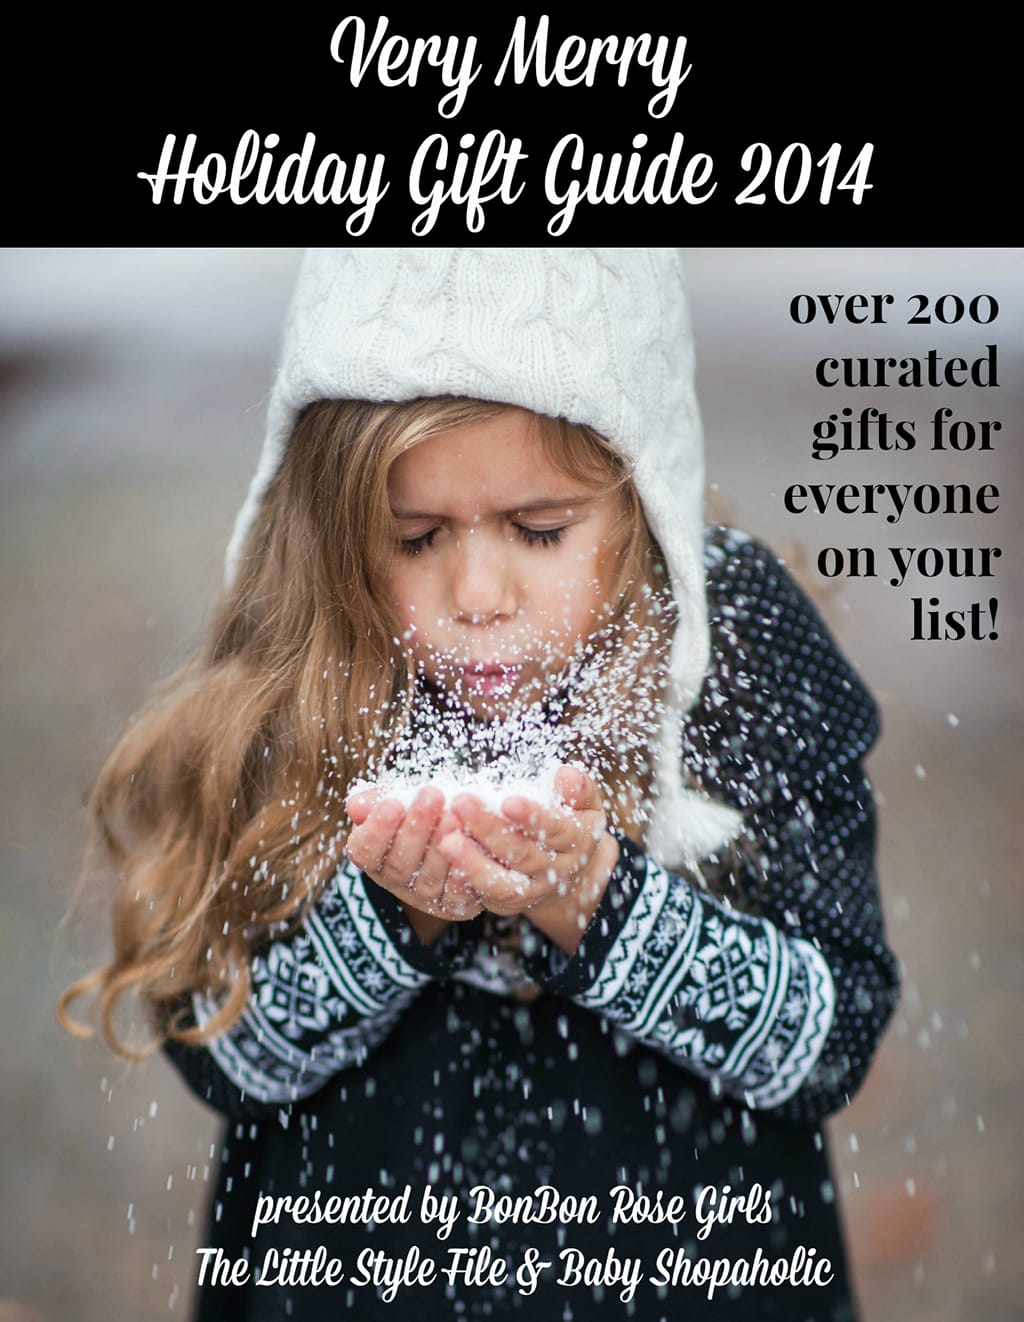 Very Merry Holiday Gift Guide